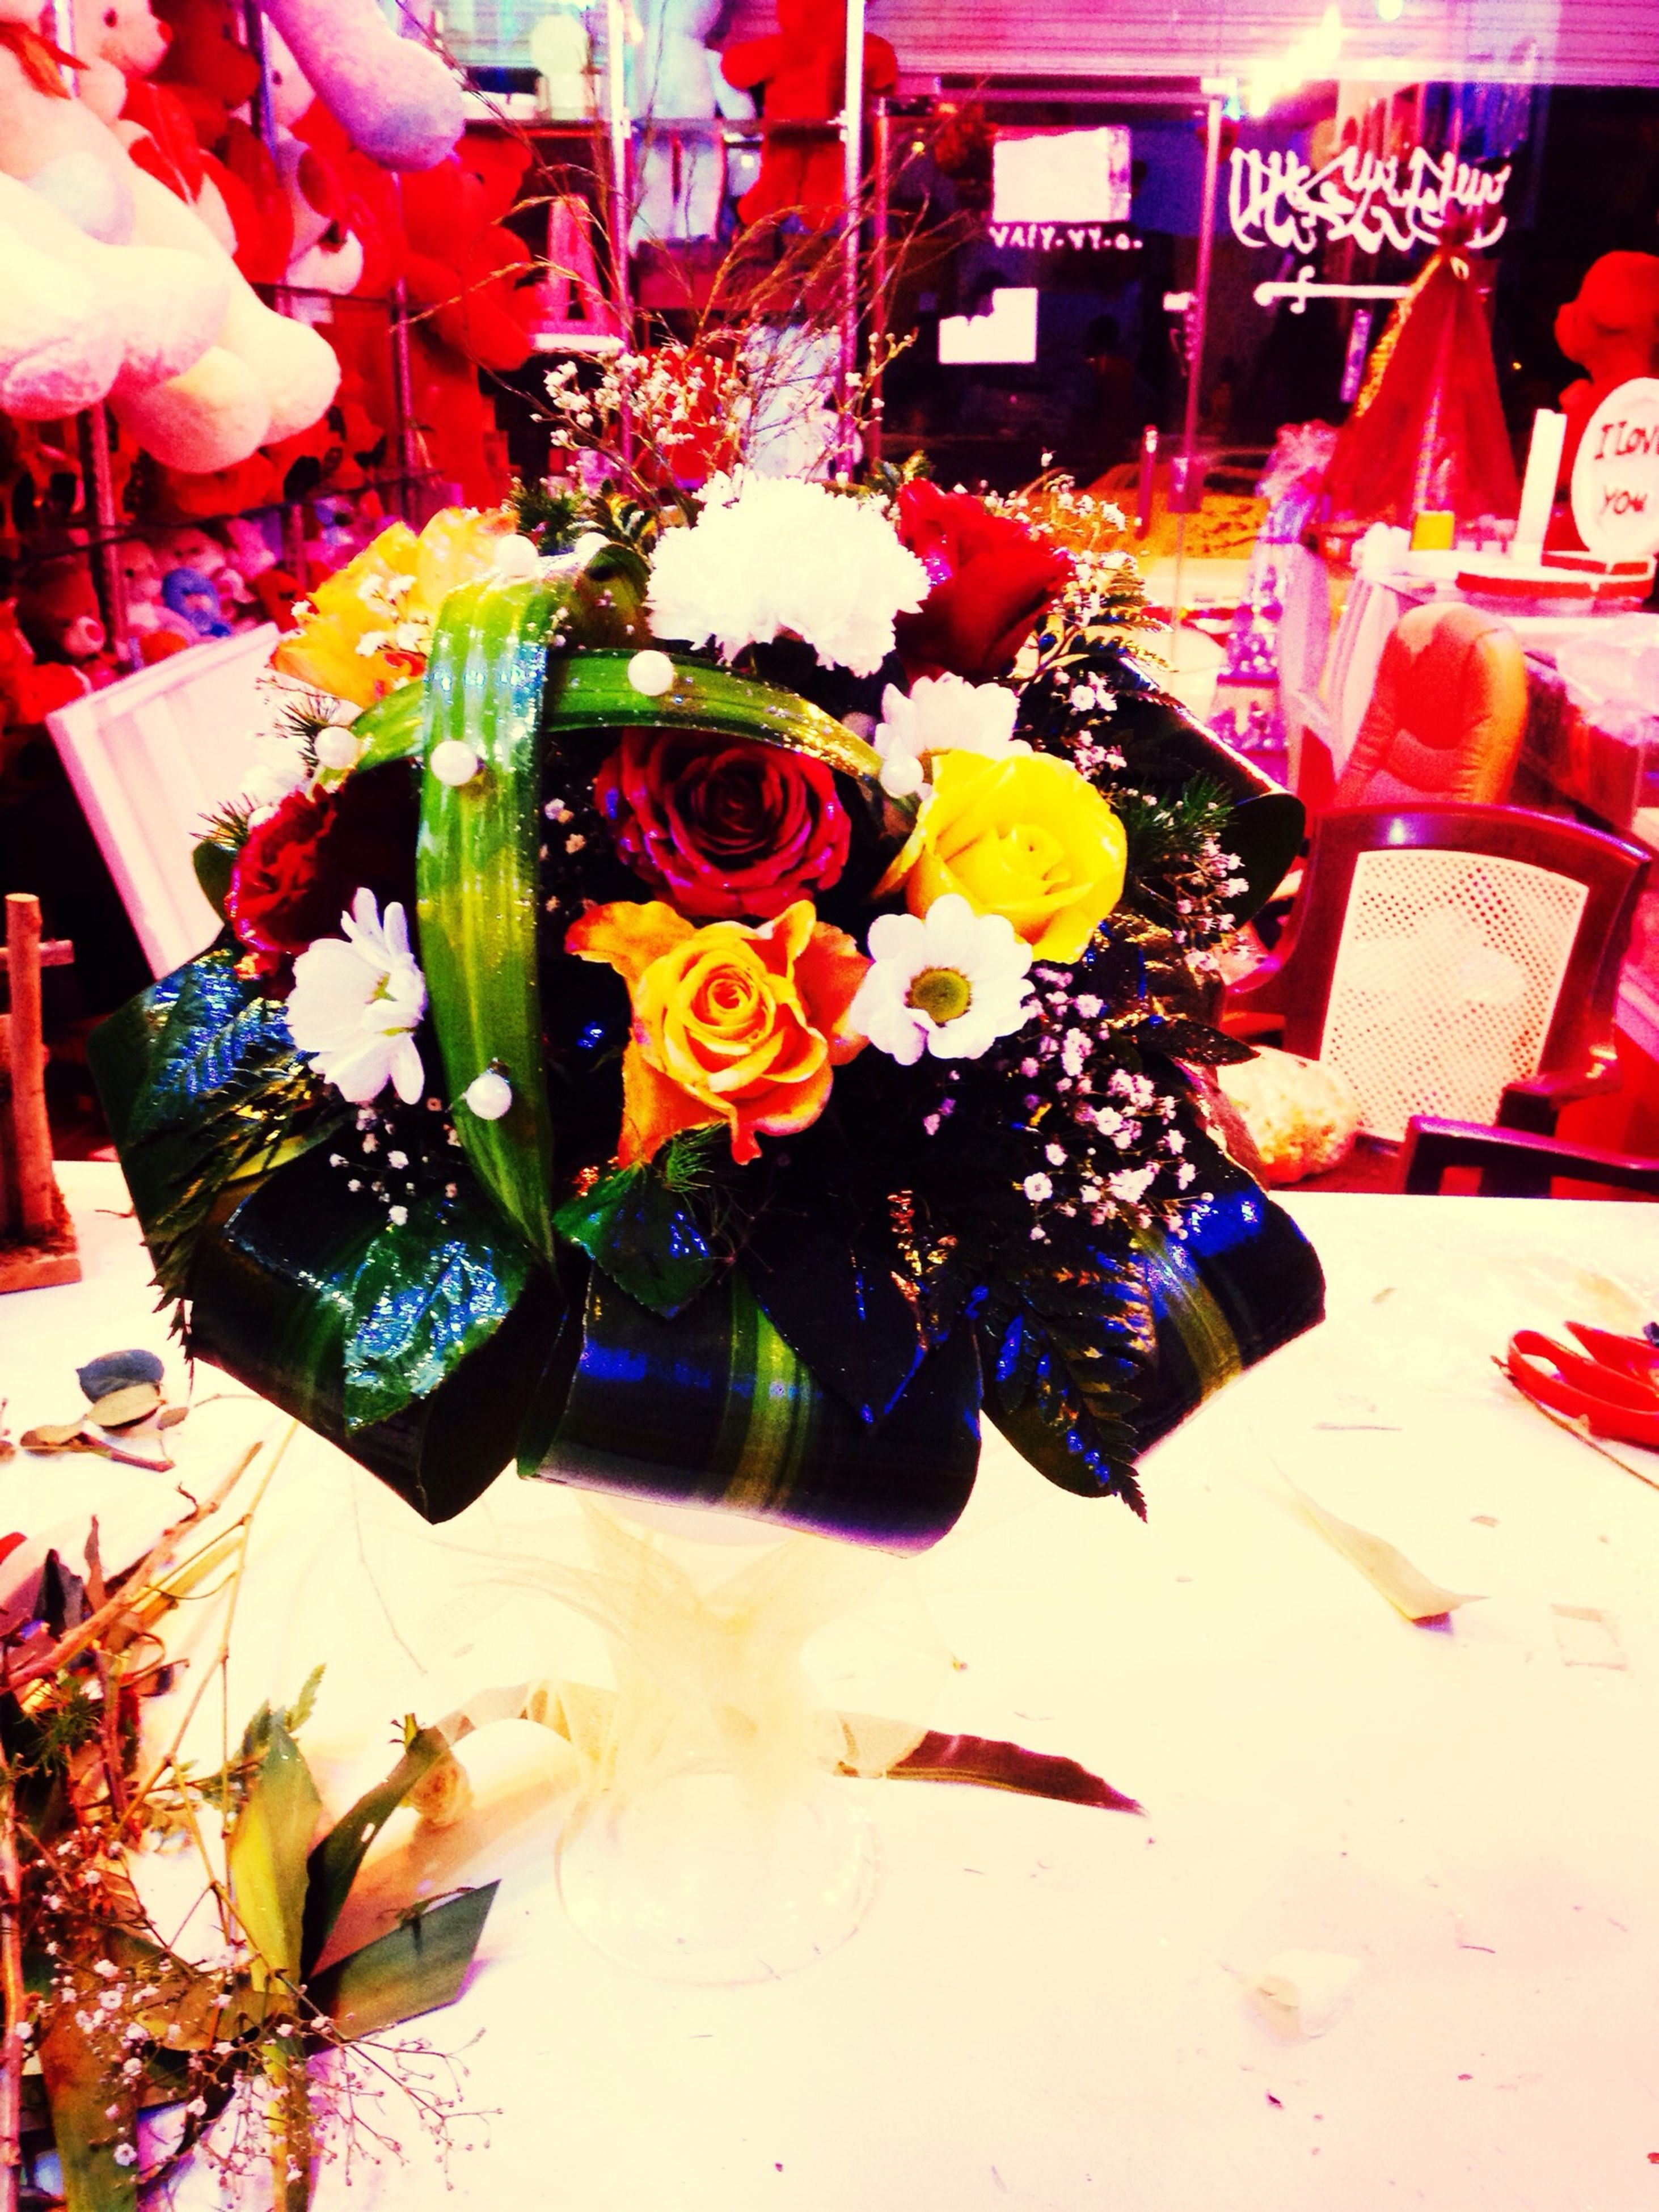 indoors, decoration, flower, table, multi colored, variation, vase, art and craft, still life, no people, creativity, arrangement, home interior, art, potted plant, celebration, house, built structure, bouquet, hanging